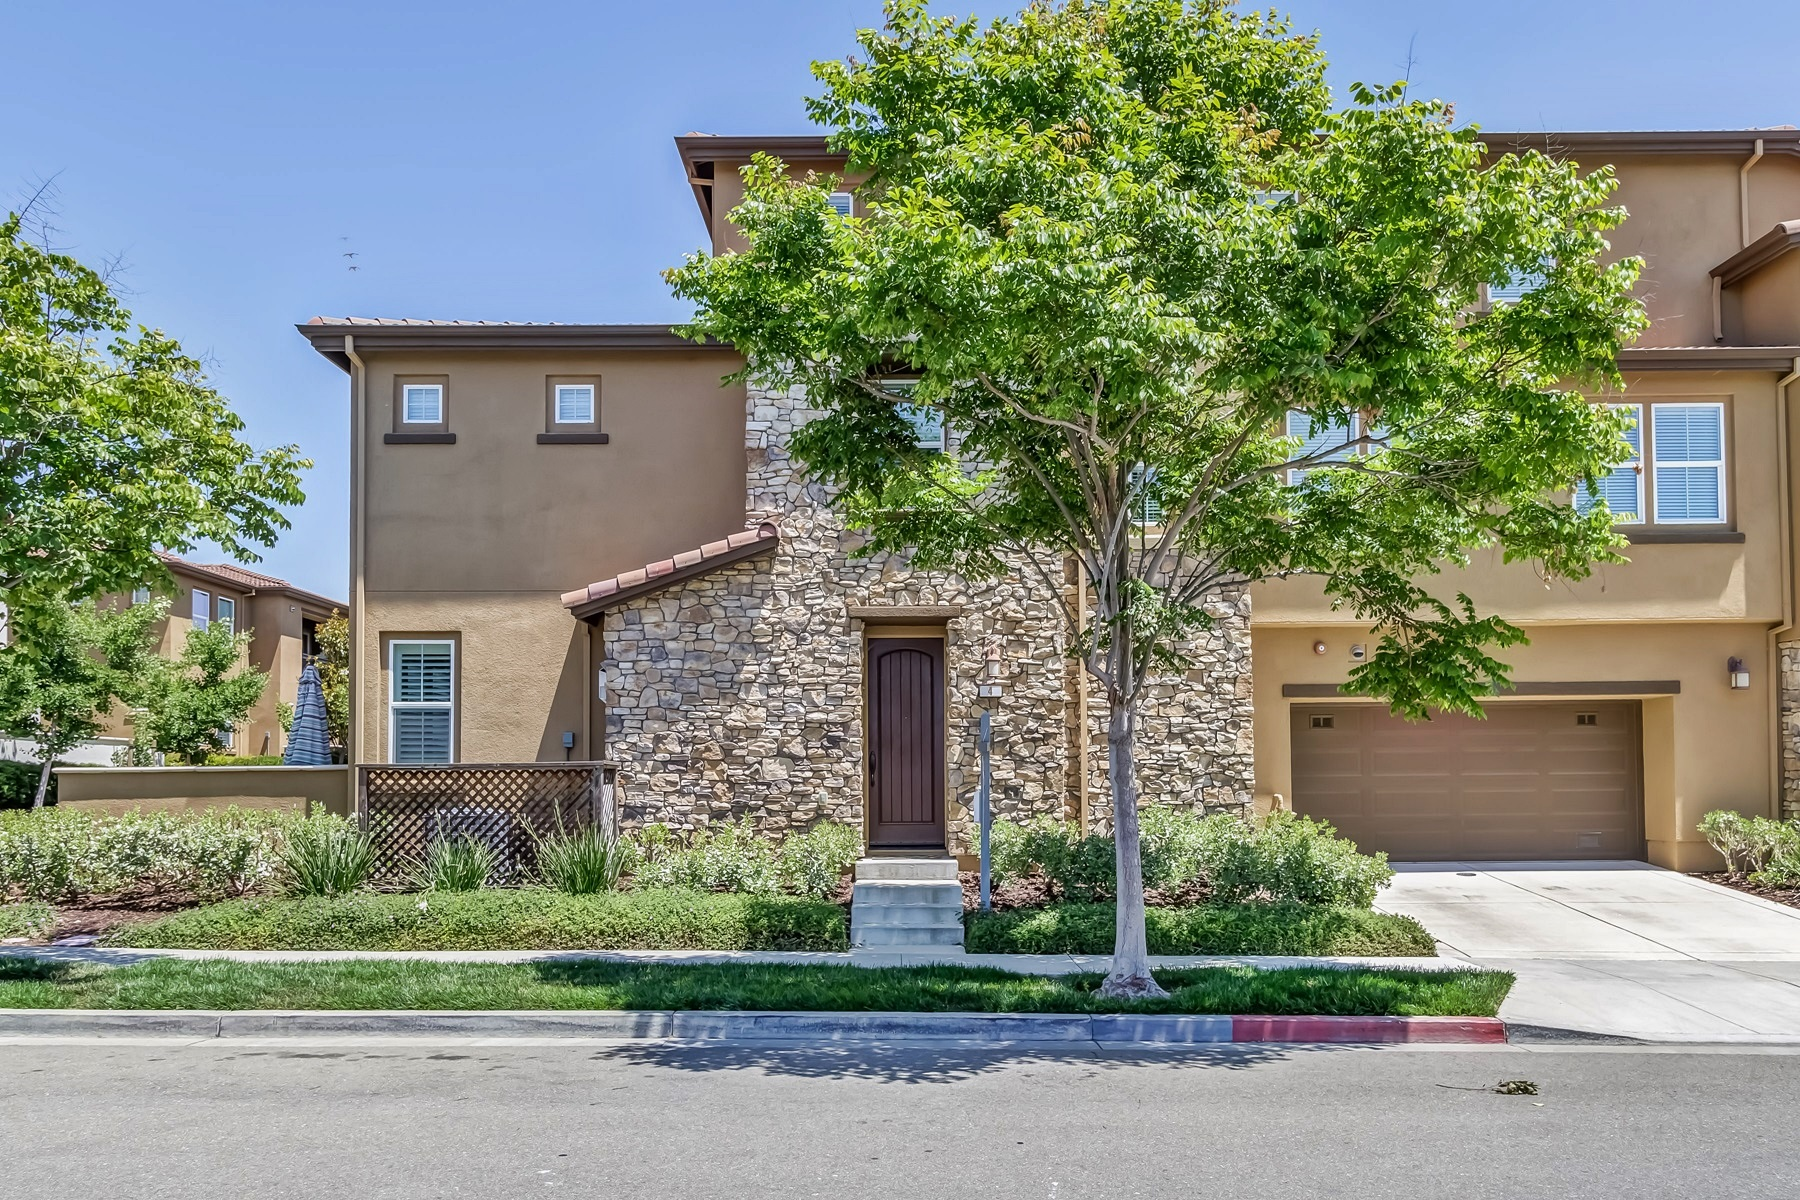 sales property at Gorgeous Throughout - Upgrades Everywhere